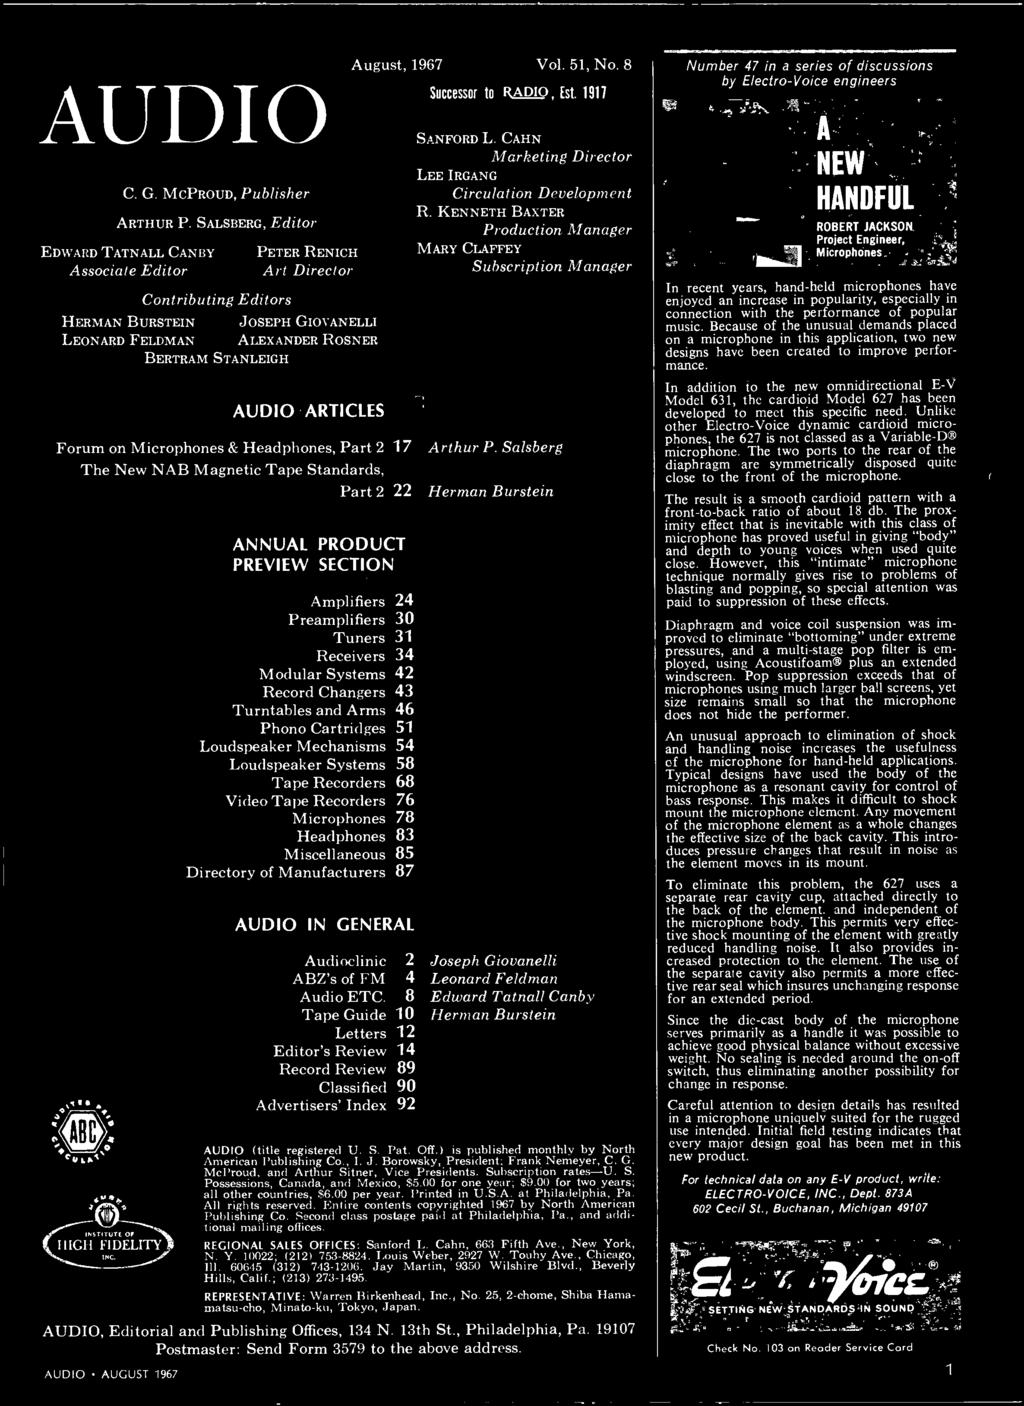 Stereo Hi Fi Preview Issue Pdf 53 Db Preamp For Tape Or Phonographs Articles Forum On Microphones Headphones Part 2 17 The New Nab Magnetic Standards